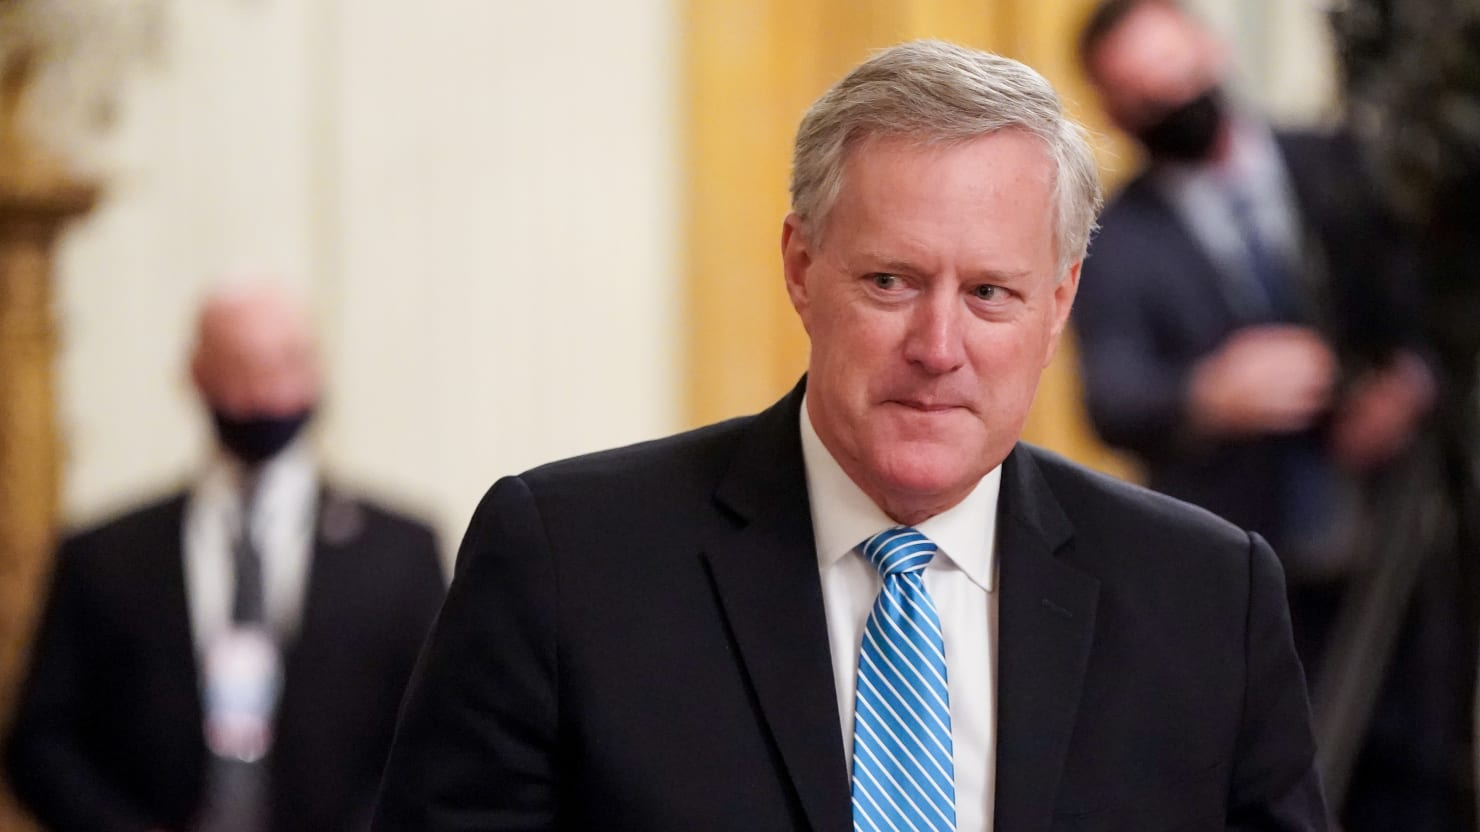 Meadows' Campaign, PAC Spent $75K on Cupcakes, Jewelry, Meals After He Quit Congress: Report